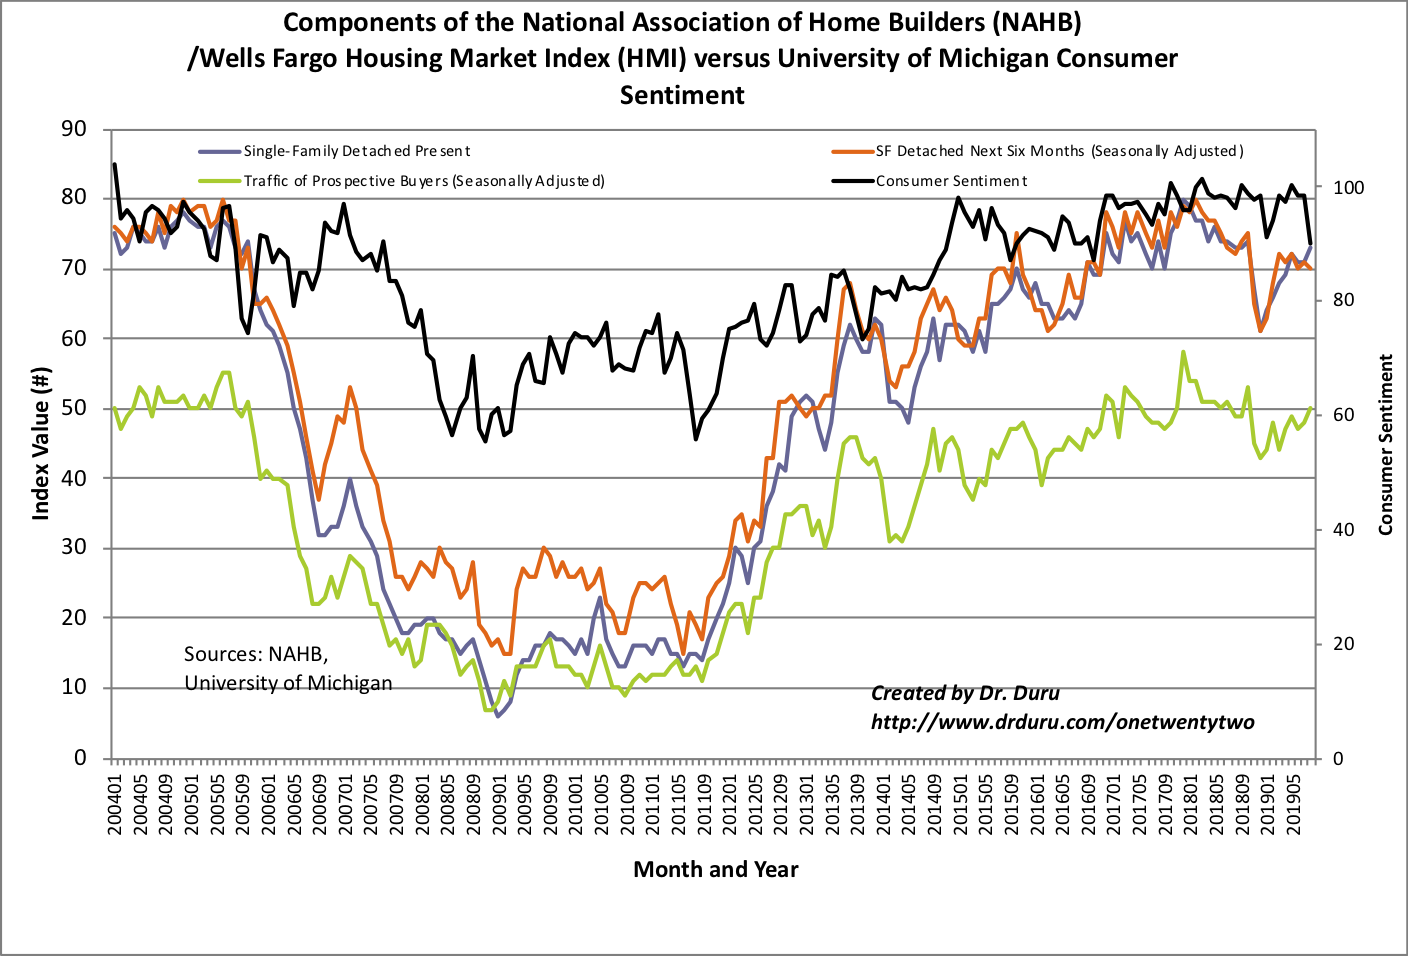 The components of the NAHB/Wells Fargo National Housing Market Index (HMI) mainly drifted higher even as consumer sentiment plunged to a near 3-year low.